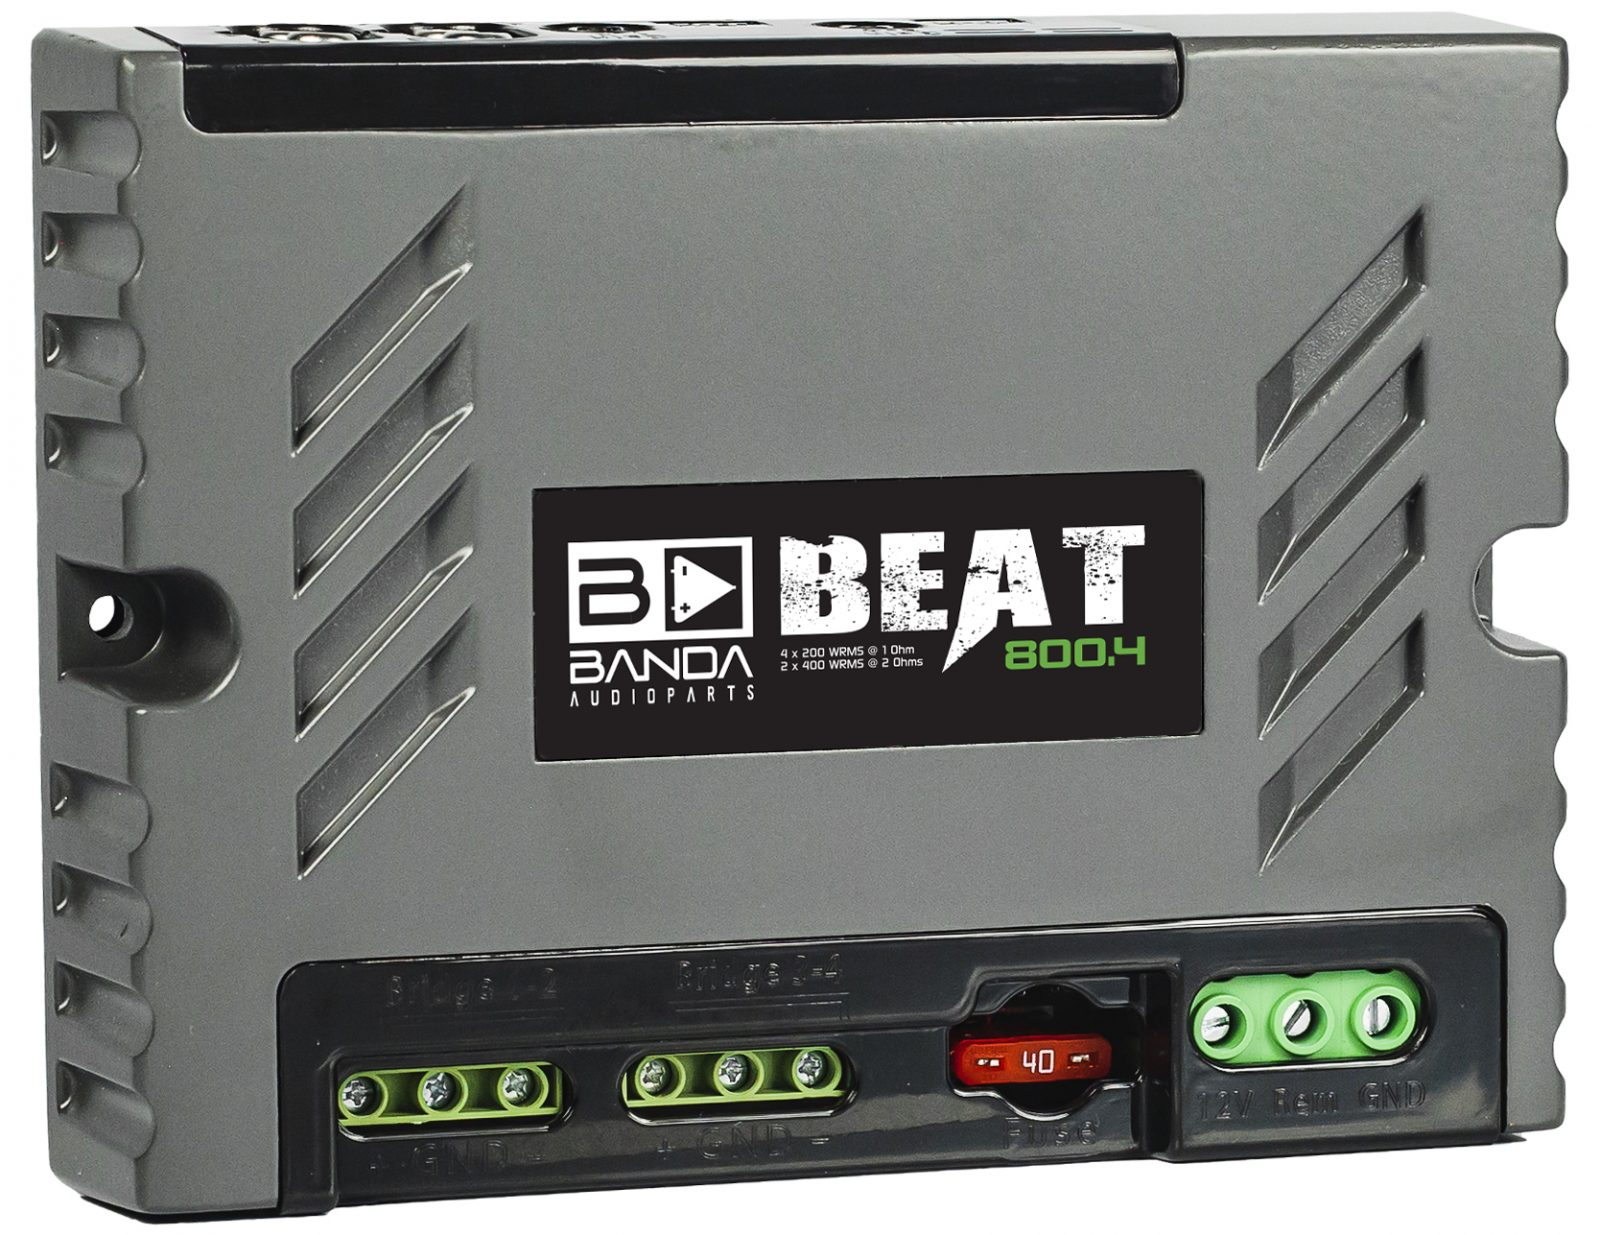 beat-800.4-diagonal-19-1600x1235 BEAT